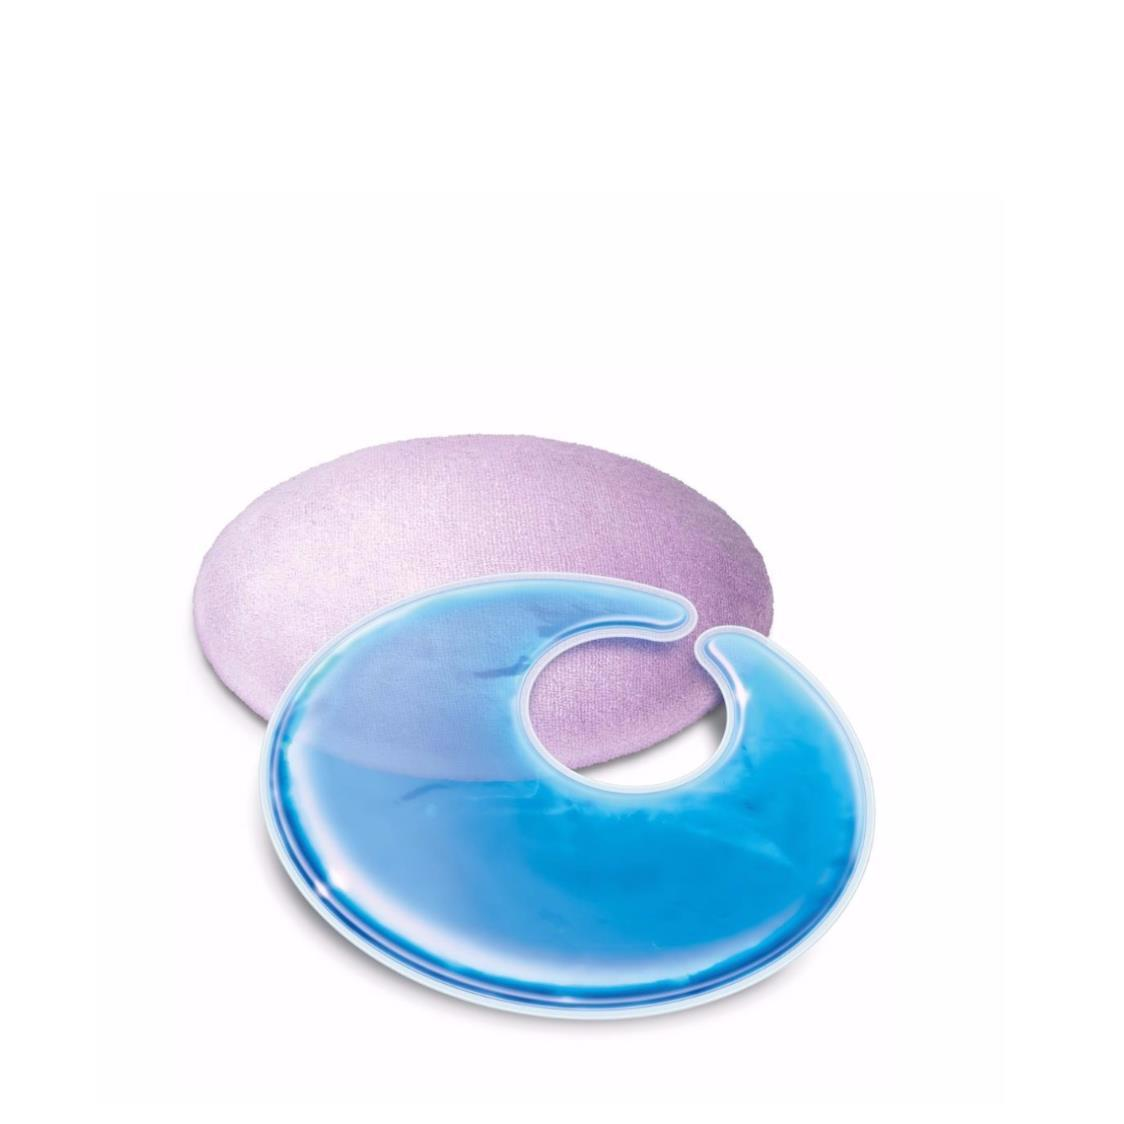 Breastcare Thermopads 2-In-1